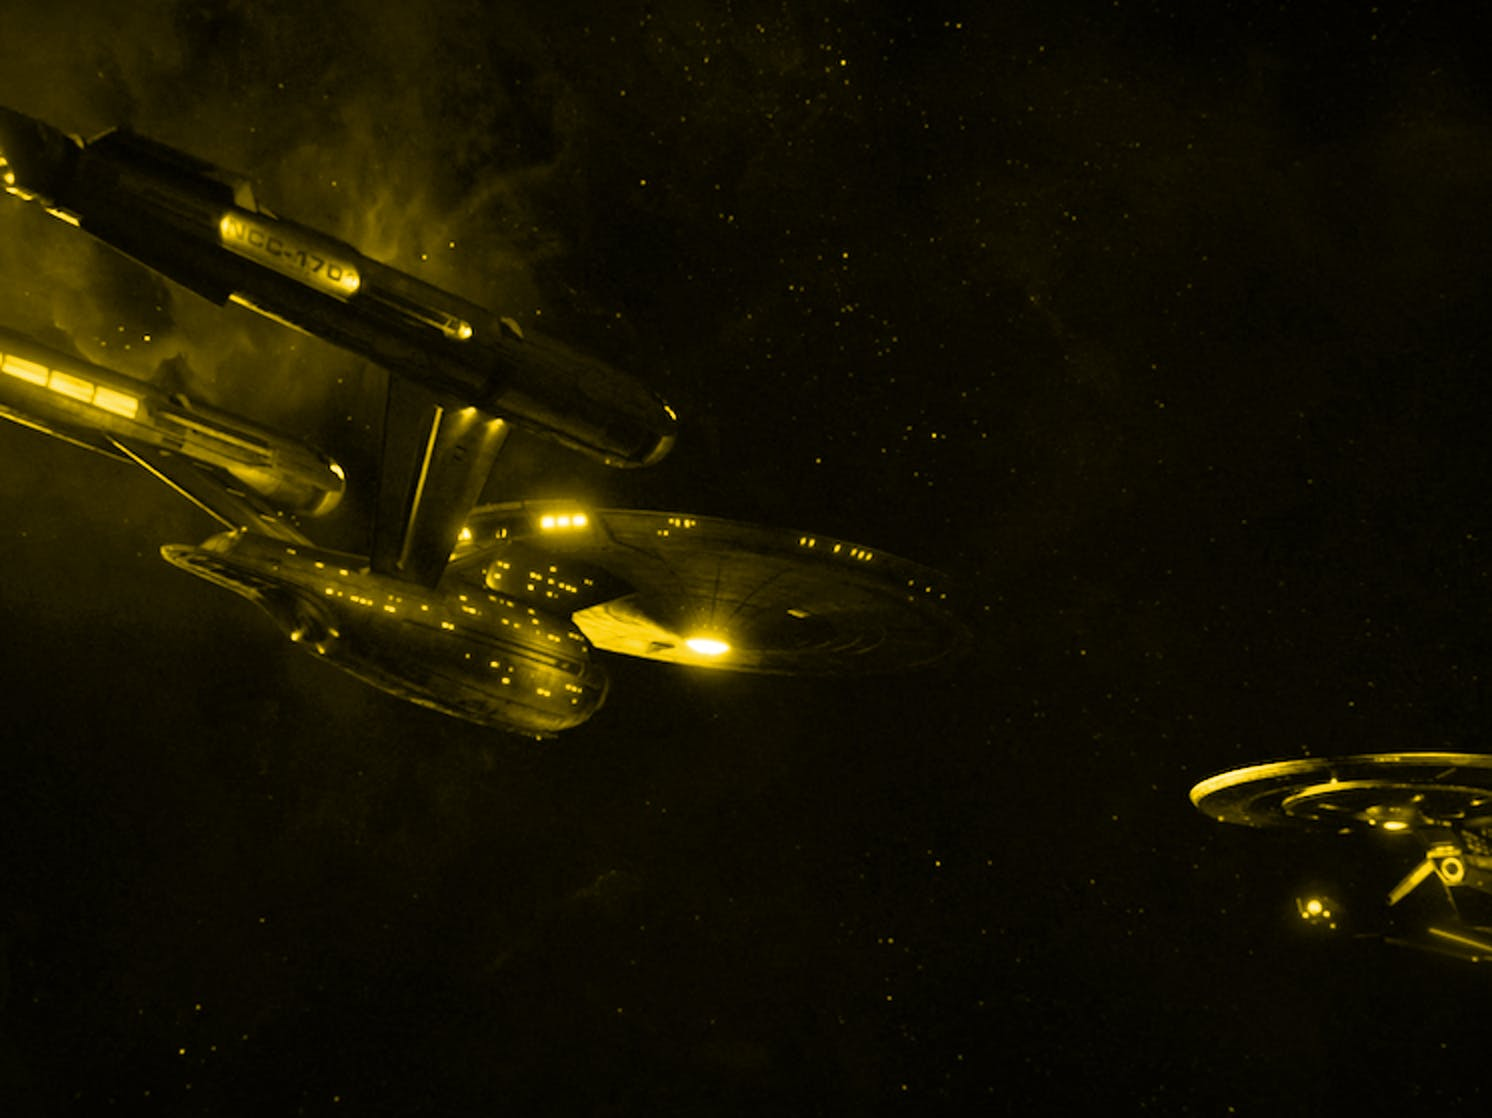 The original USS Enterprise in 'Star Trek'